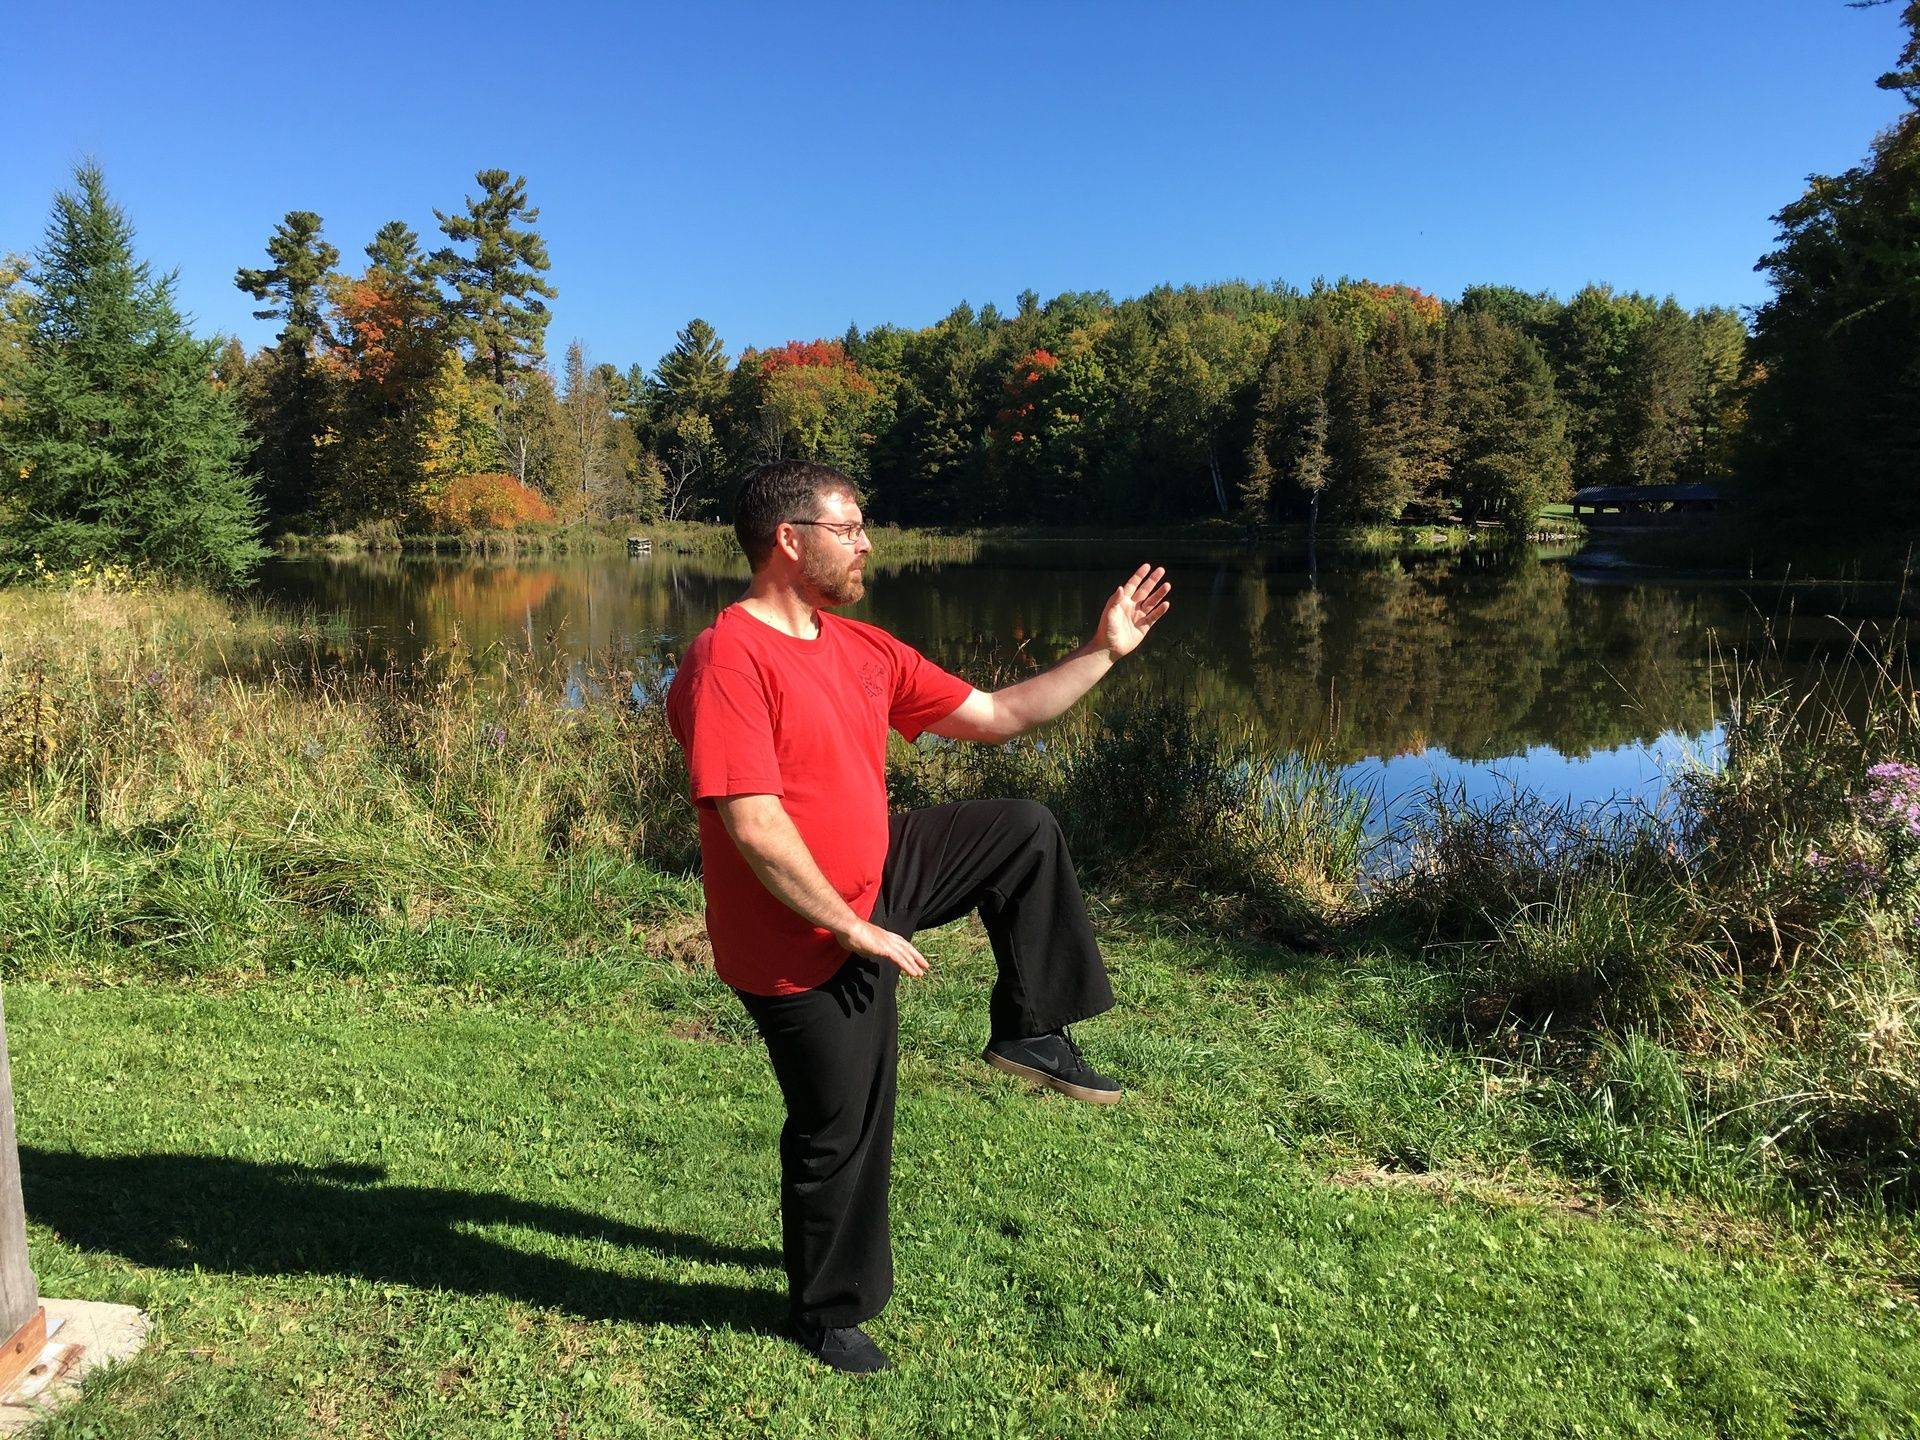 Sifu Magwood, Golden rooster stands on one leg